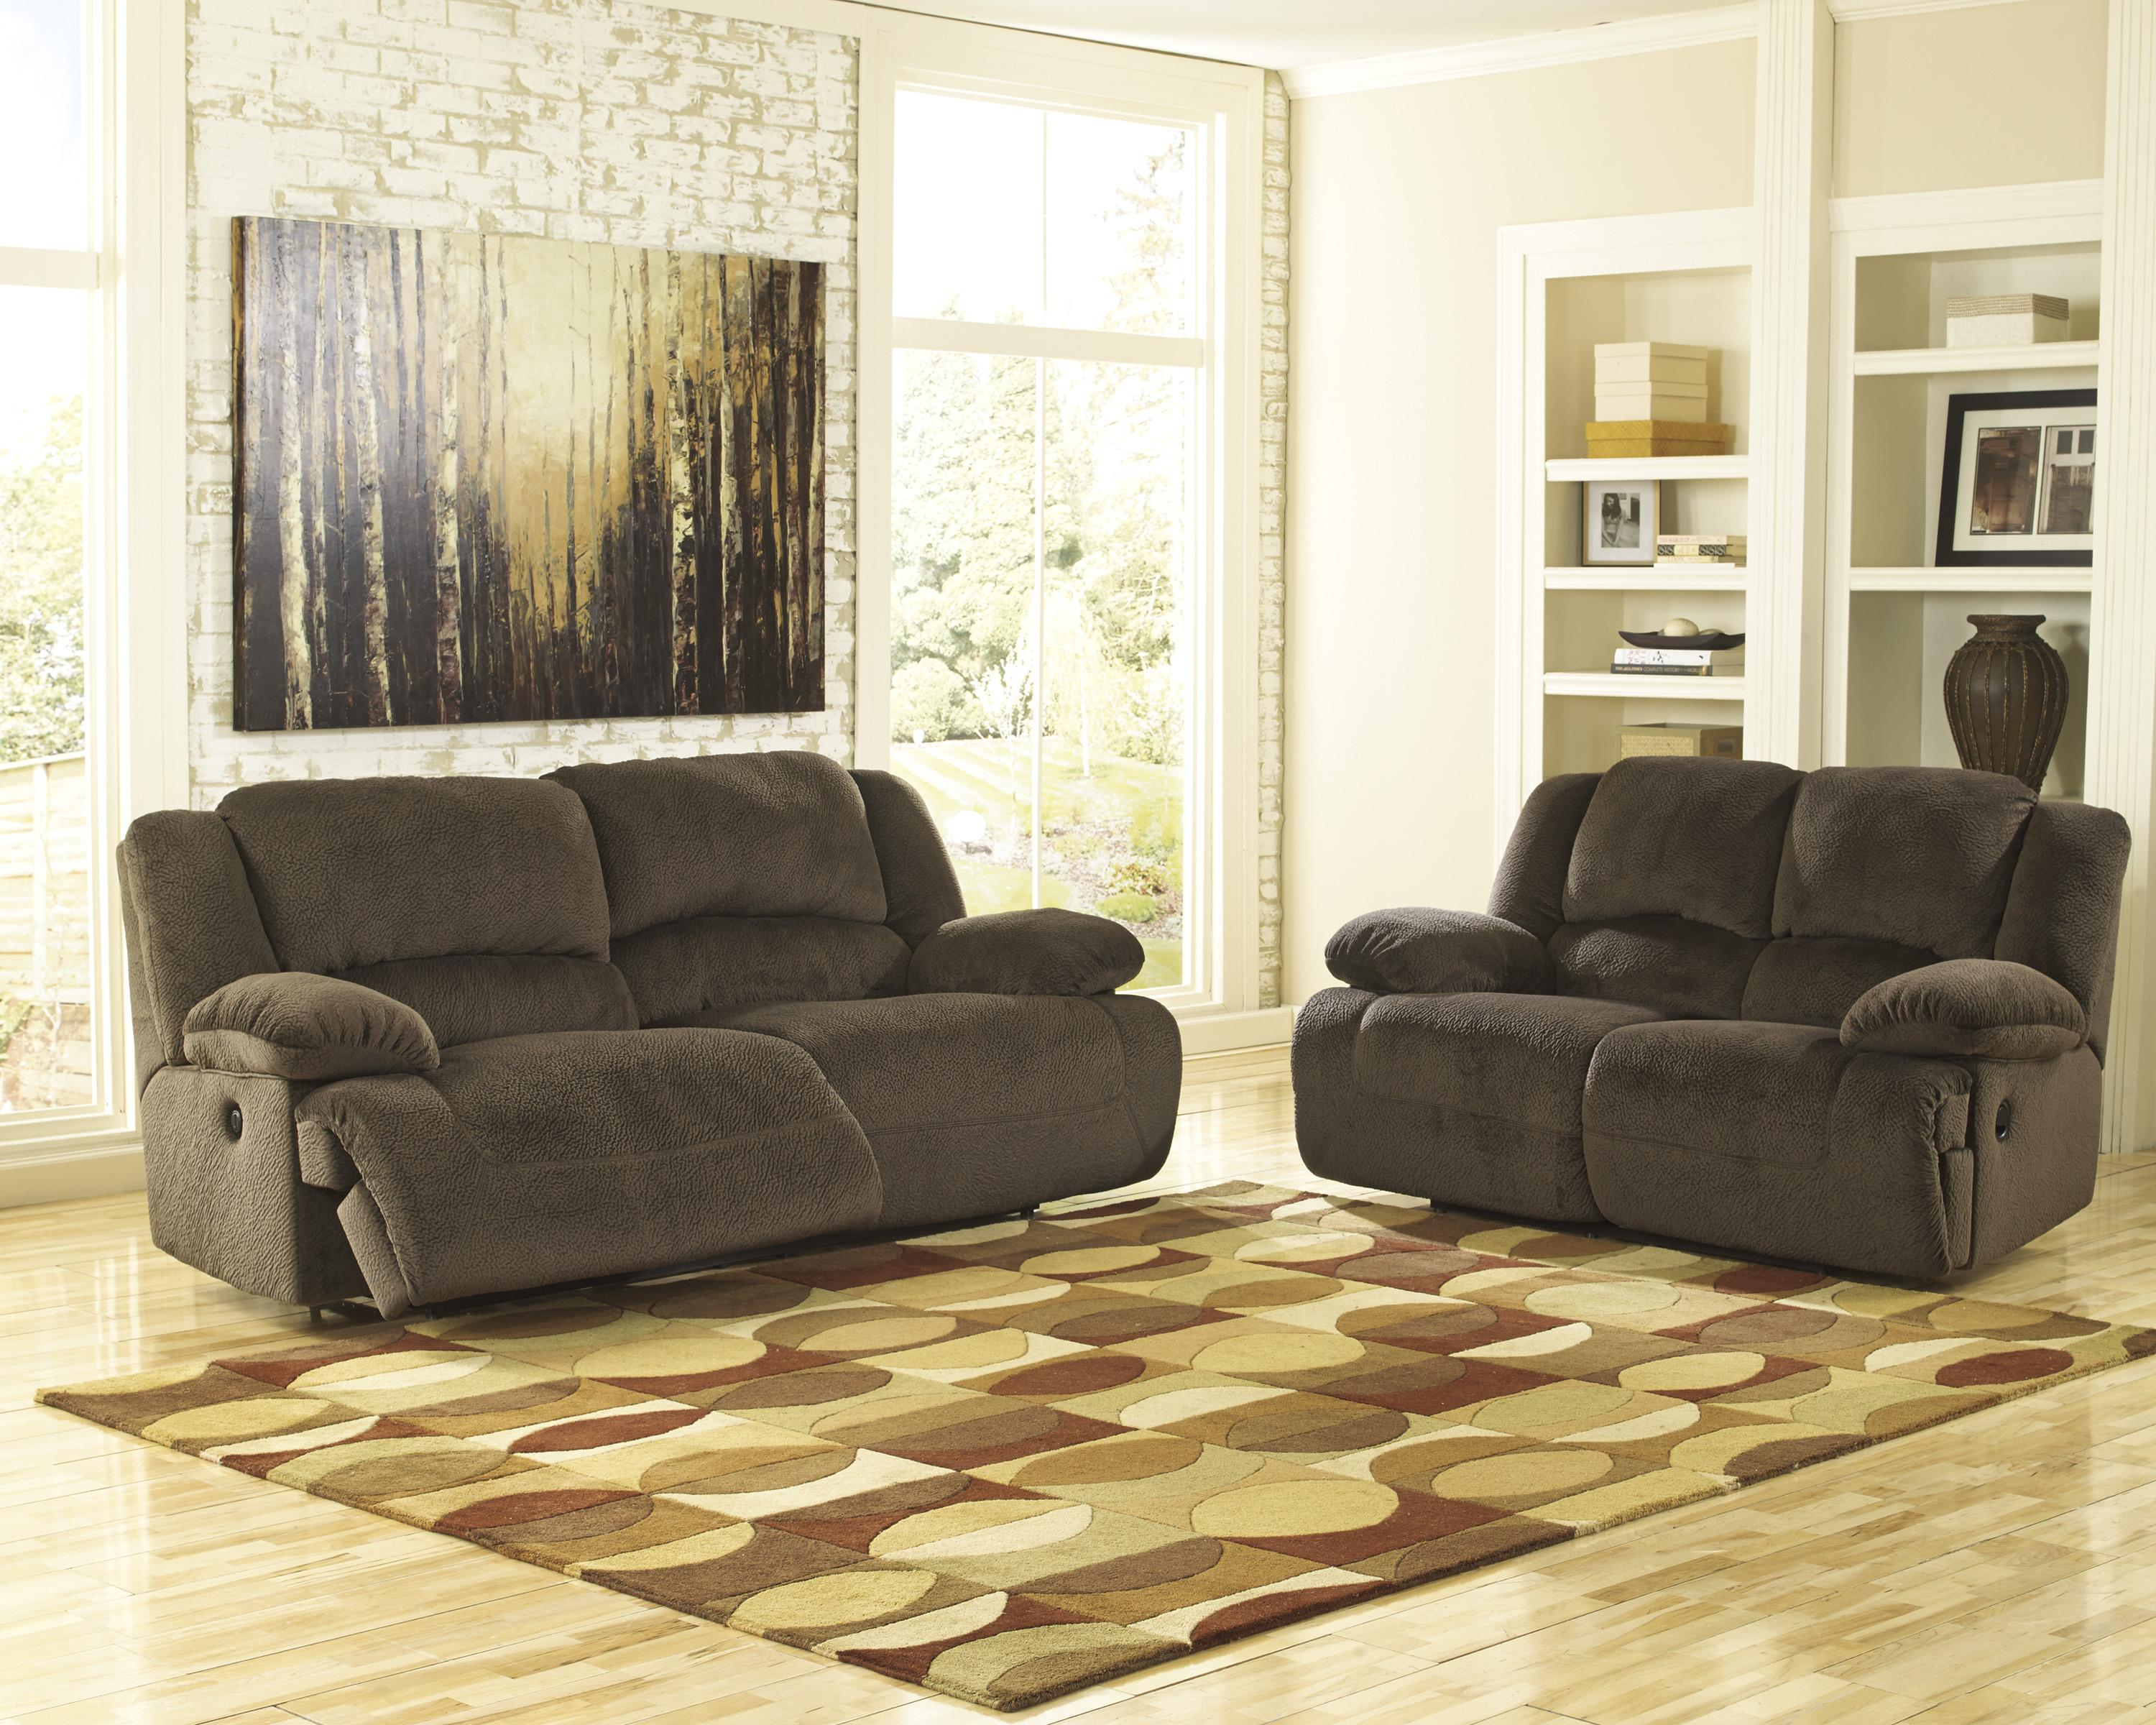 Ashley Toletta 2pc Recliner Sofa And